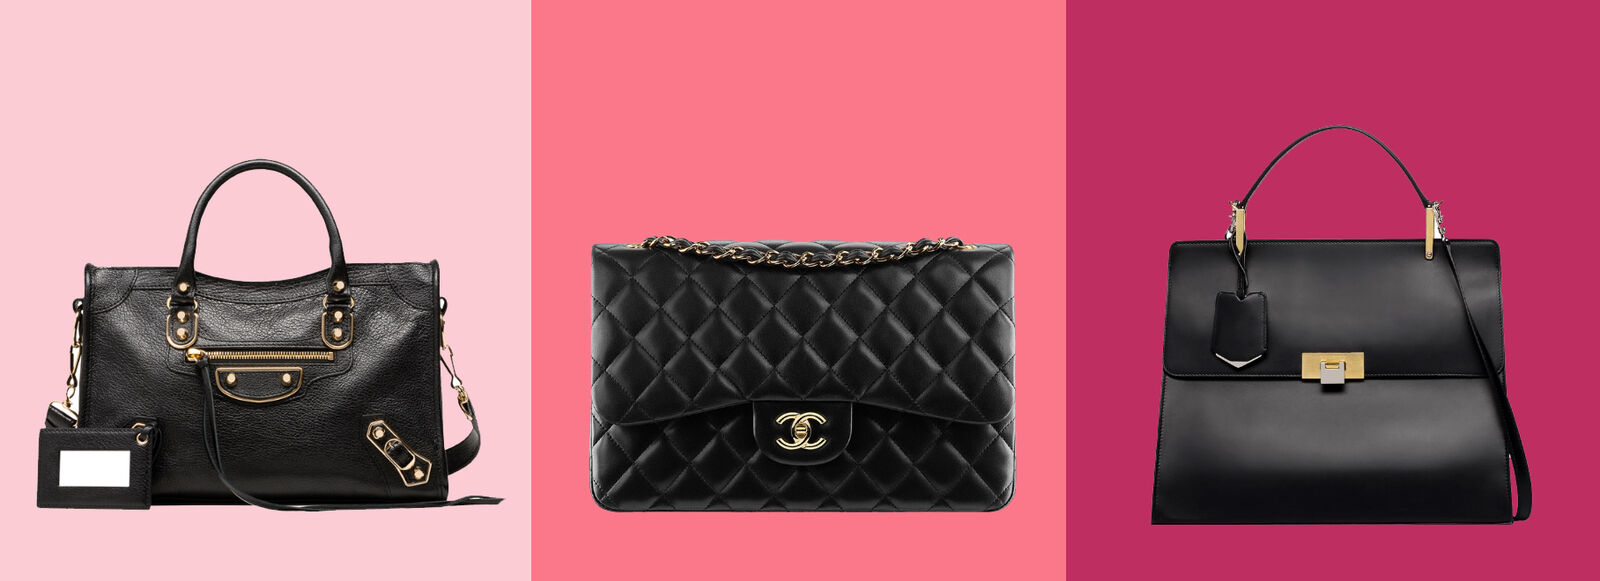 Shop Now - Bag This Style